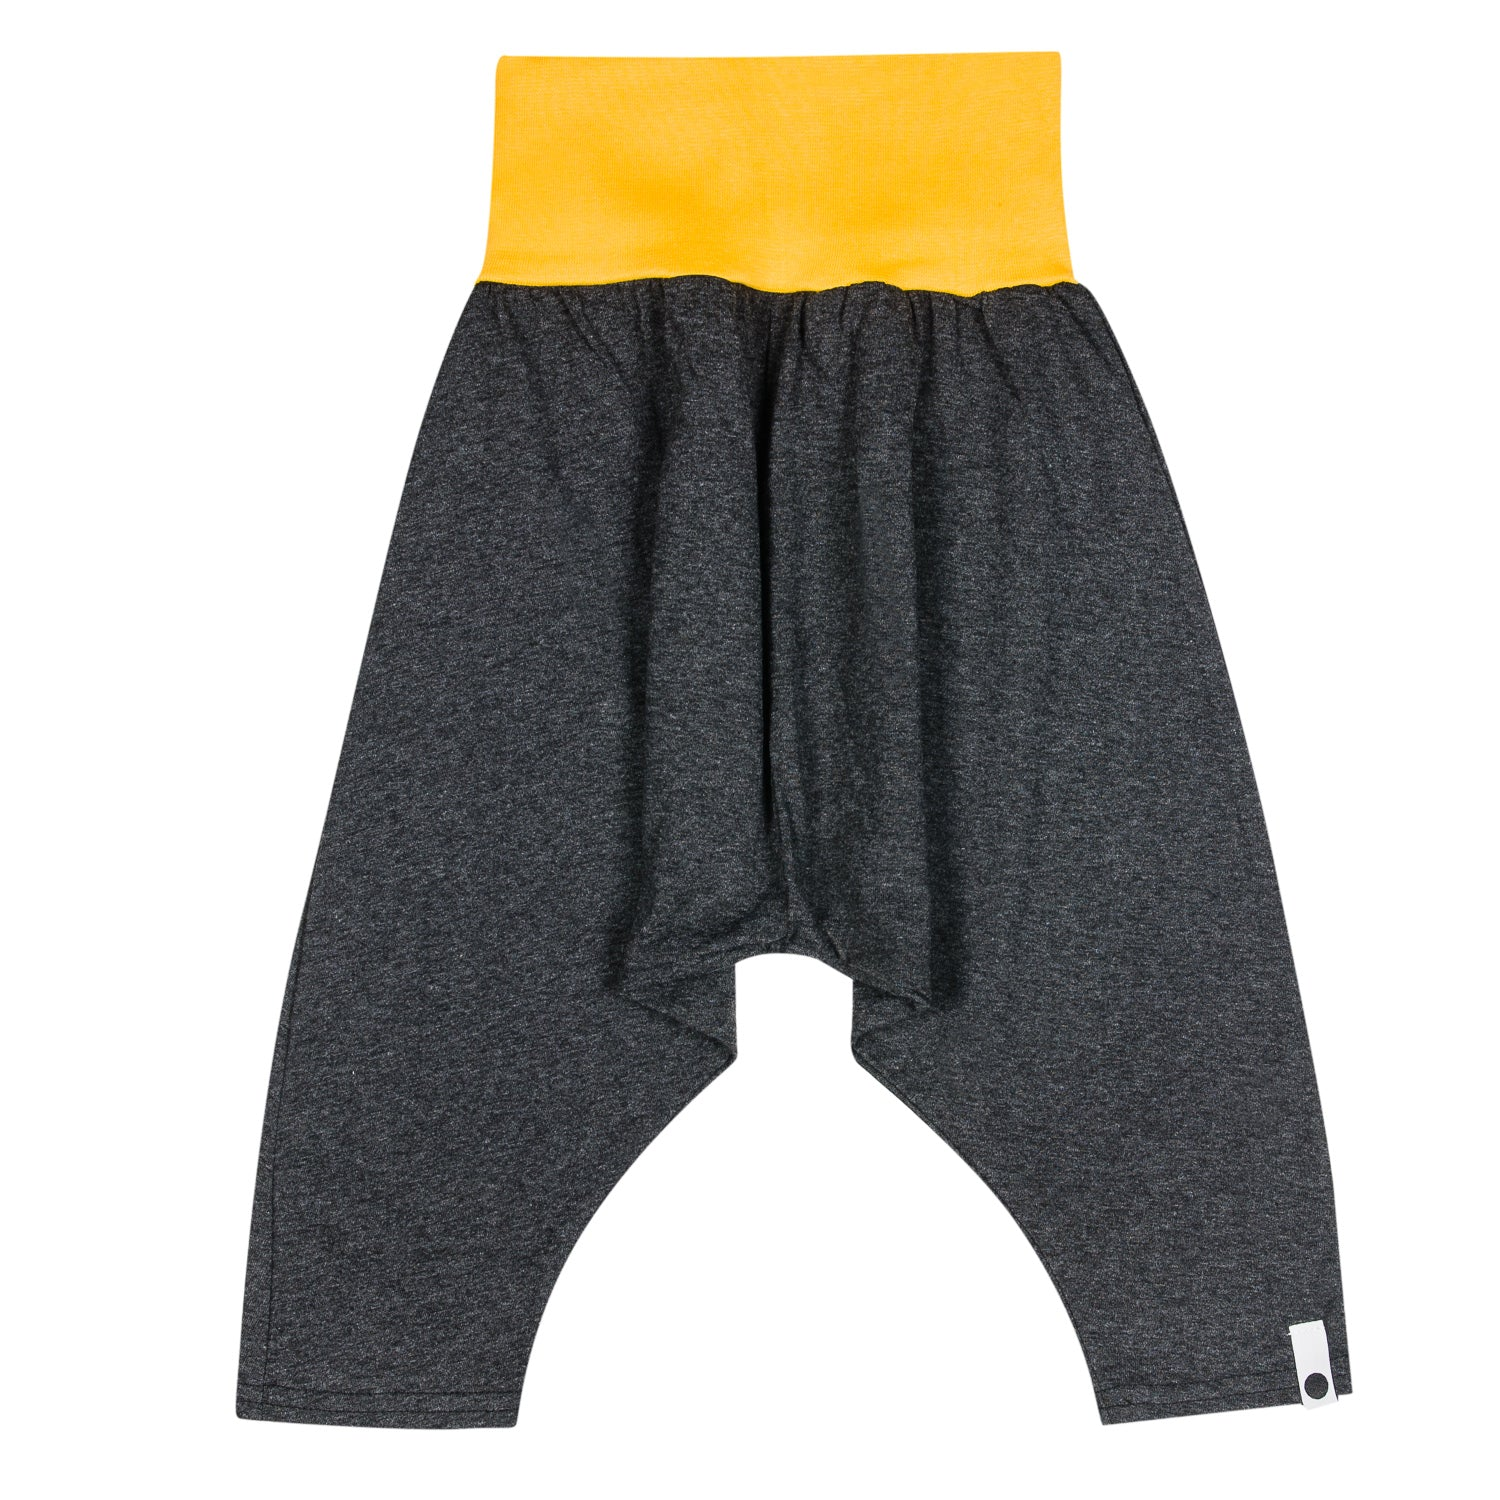 lamama Grey/Yellow Aladin Pants